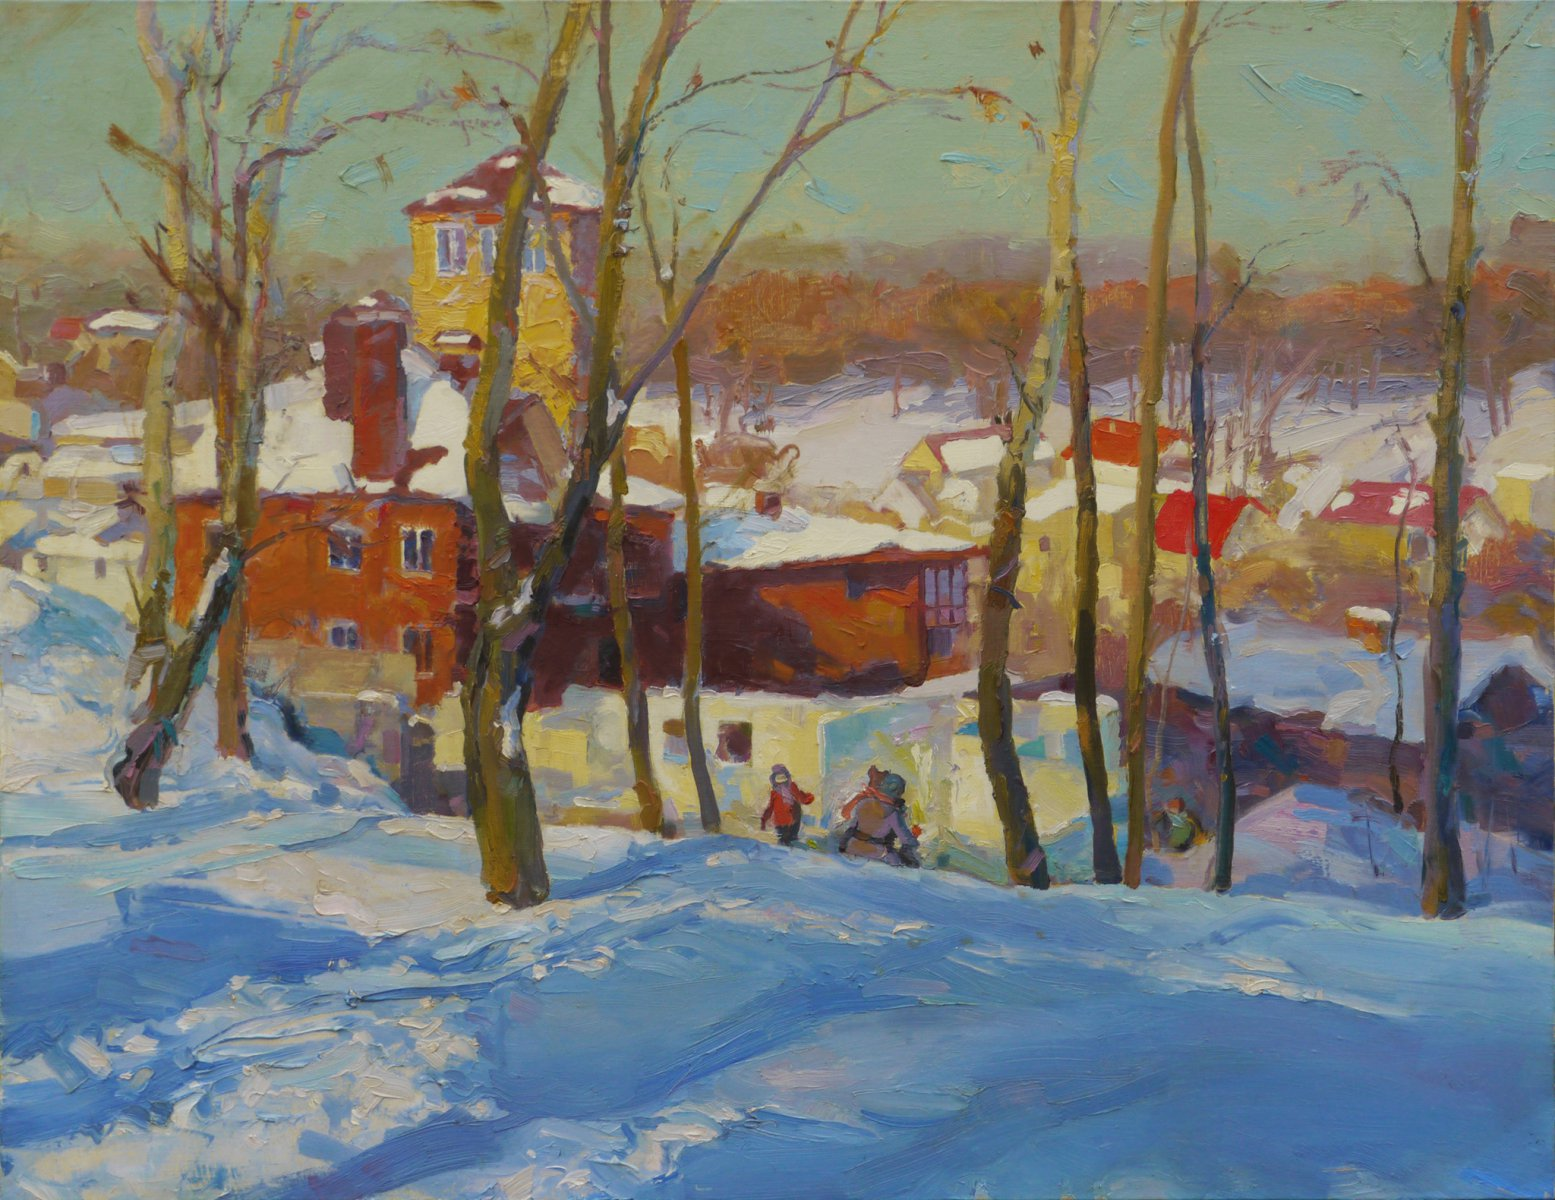 Winter on Kristers mountine - Victor Onyshchenko